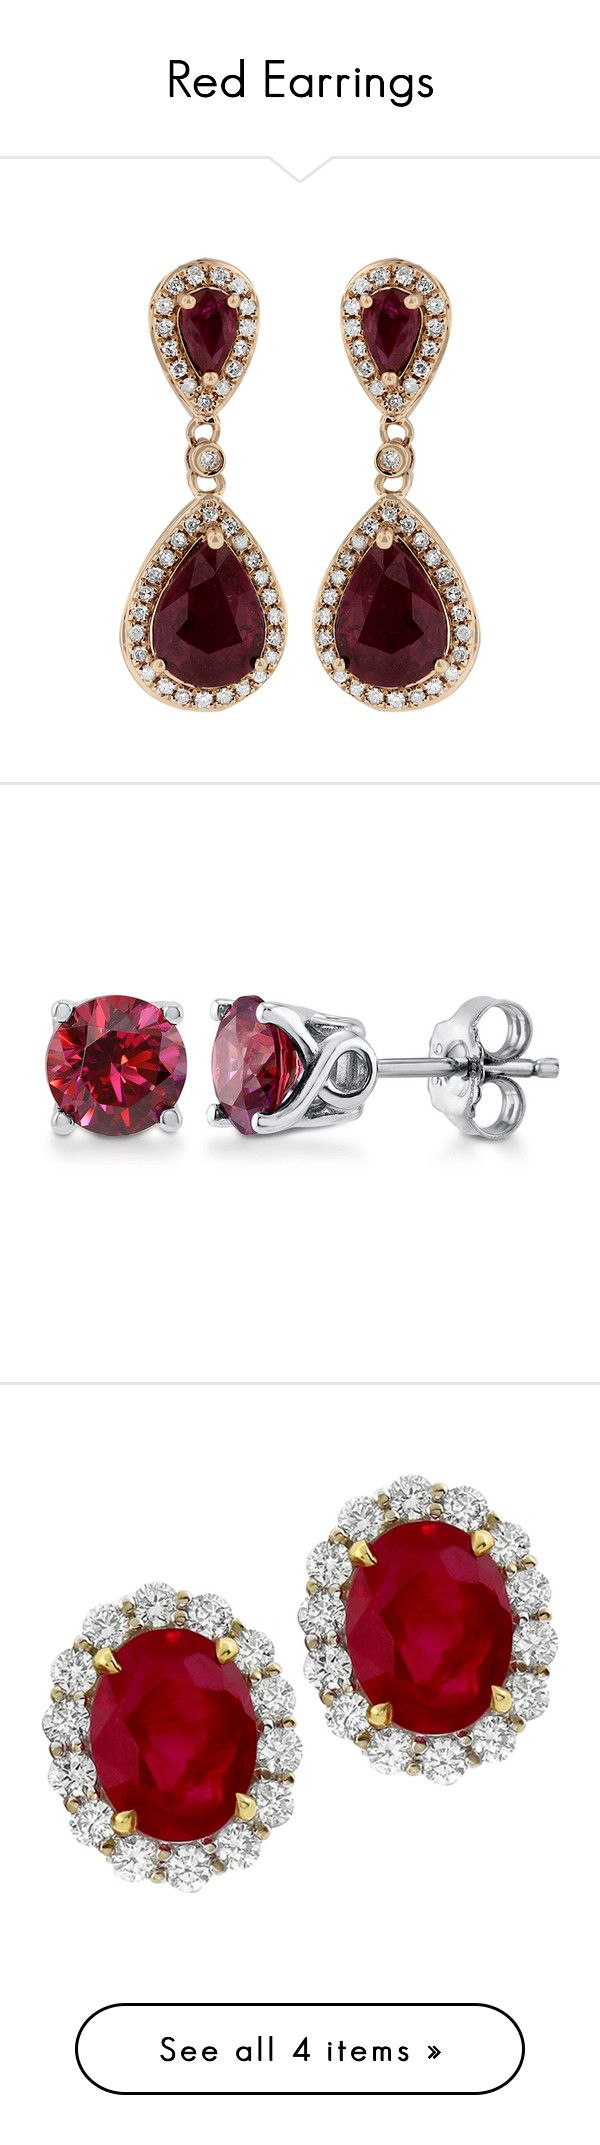 """Red Earrings"" by mina-744 ❤ liked on Polyvore featuring jewelry, earrings, pandora jewelry, ruby earrings, red gold jewelry, diamond jewellery, ruby jewelry, accessories, red and sterling silver"